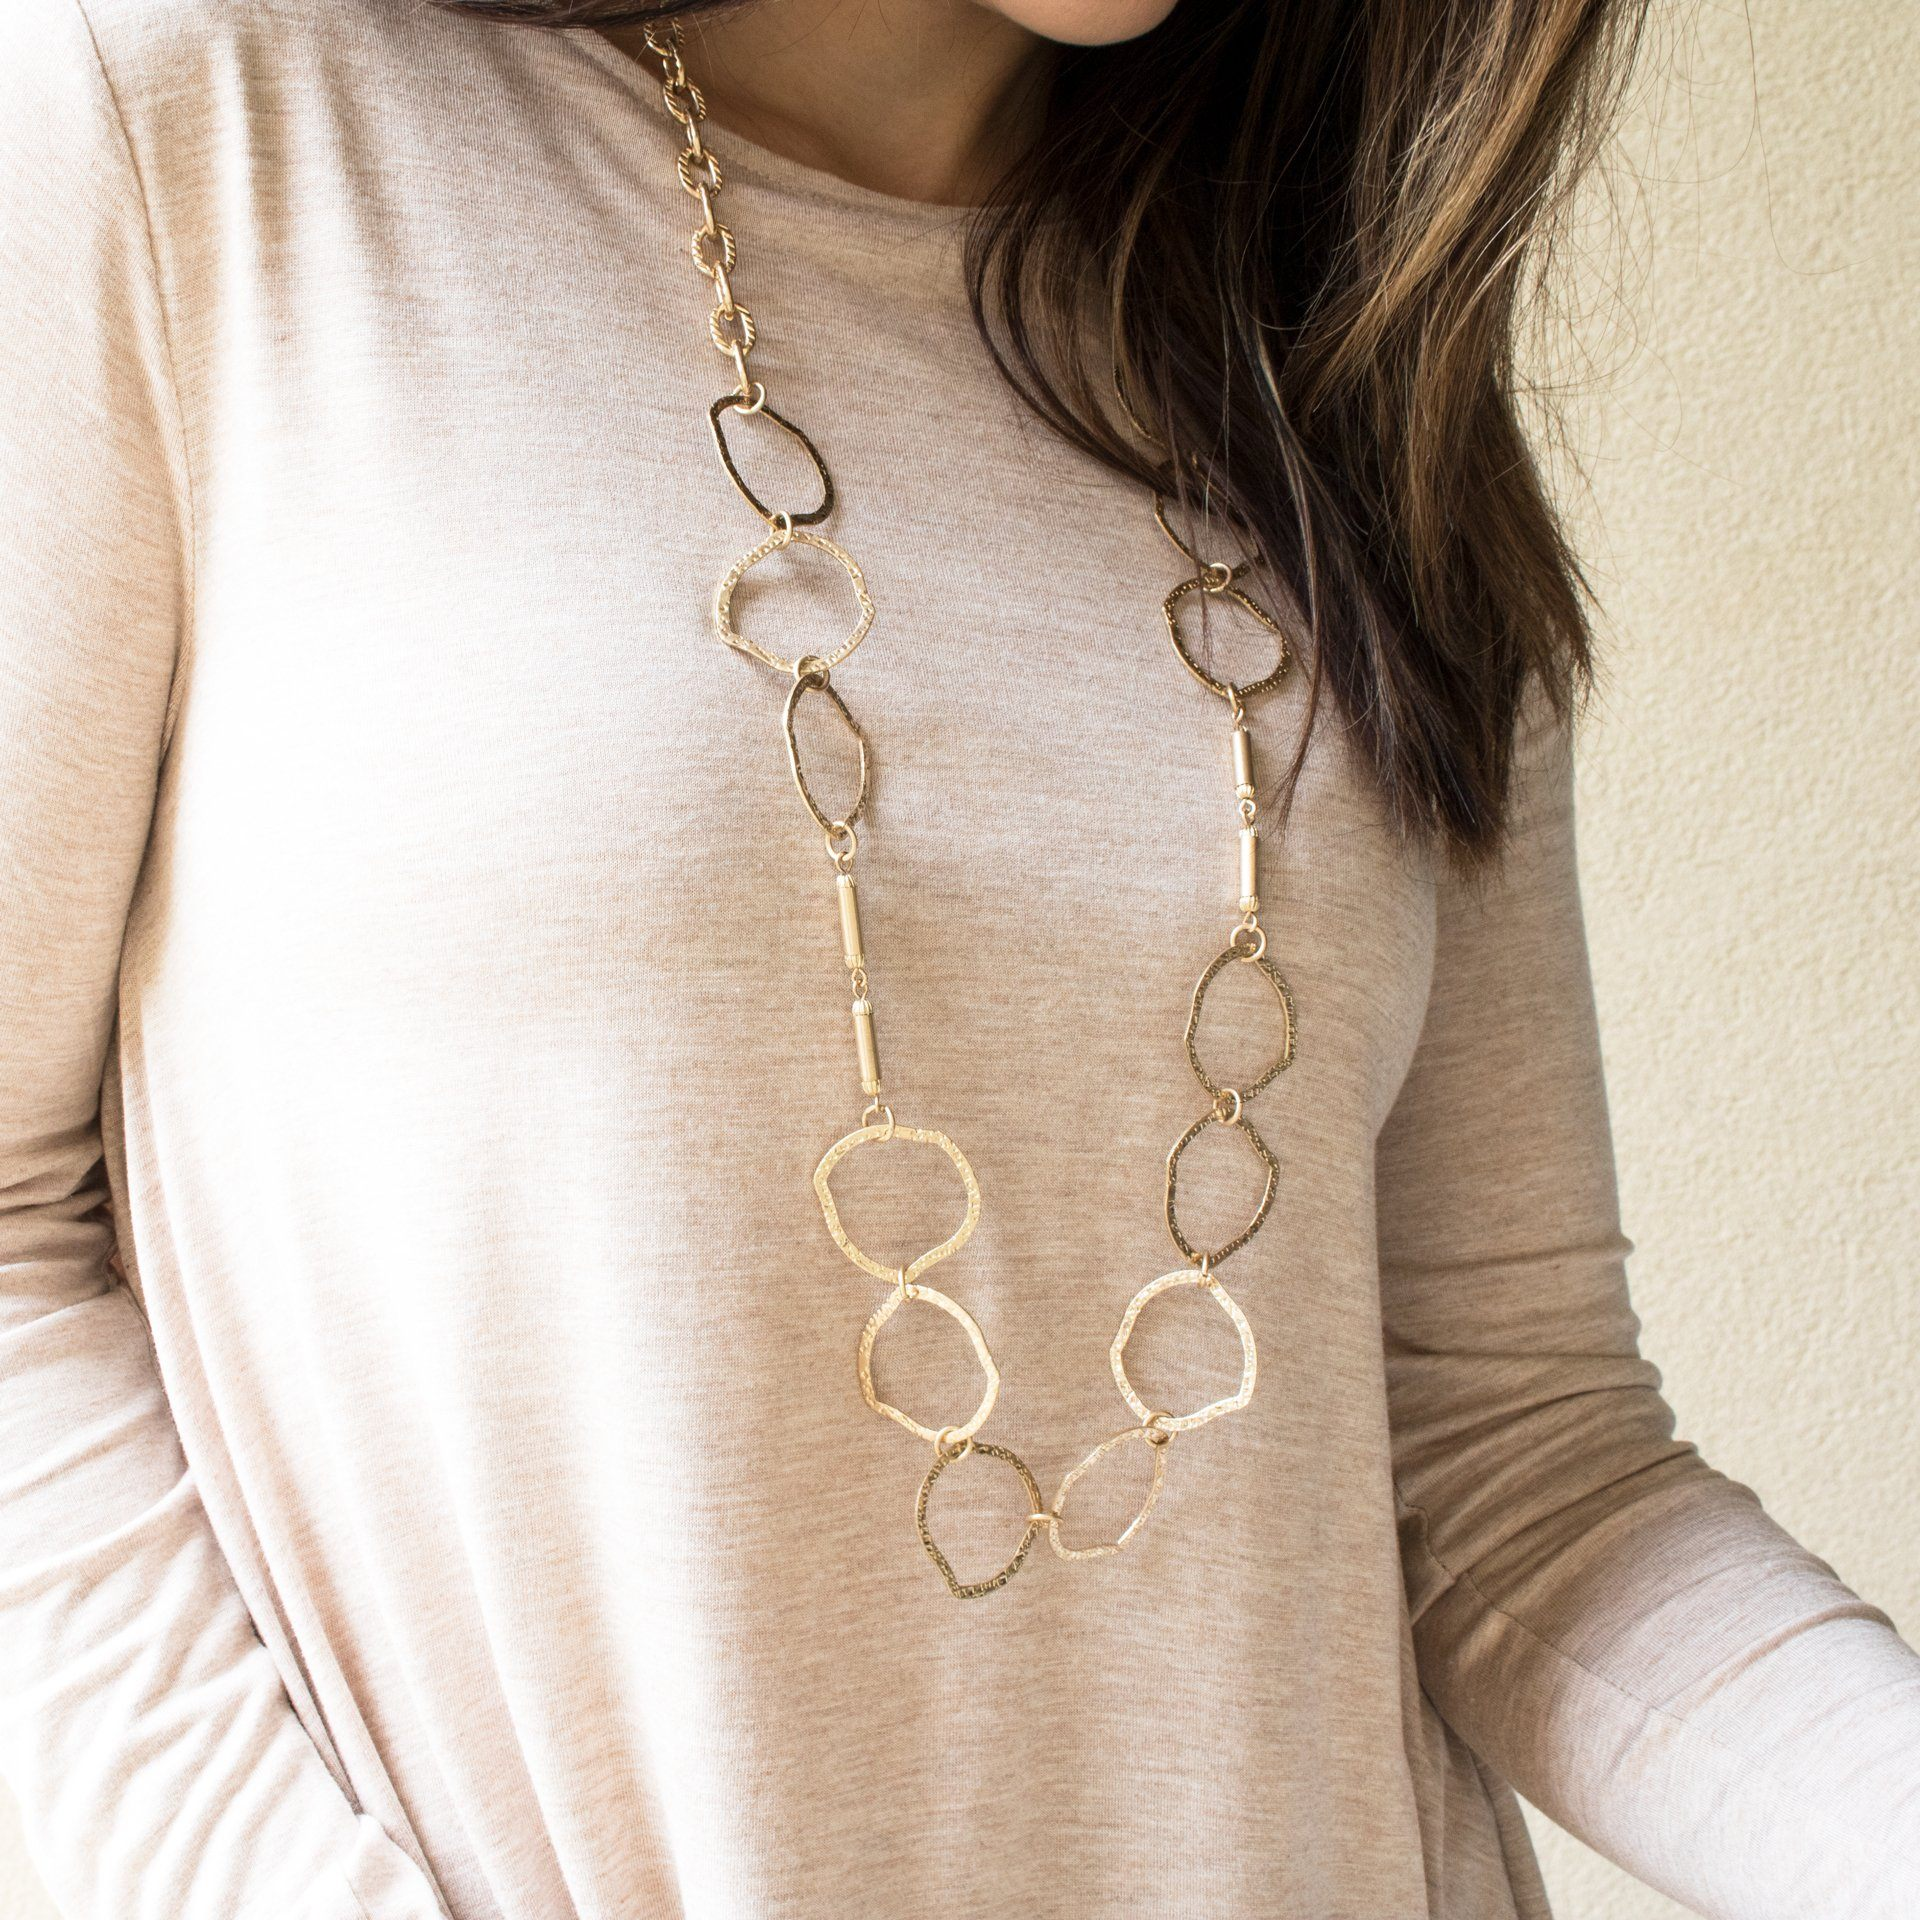 'Erika' Gold Organic Link Necklace - Arlo and Arrows